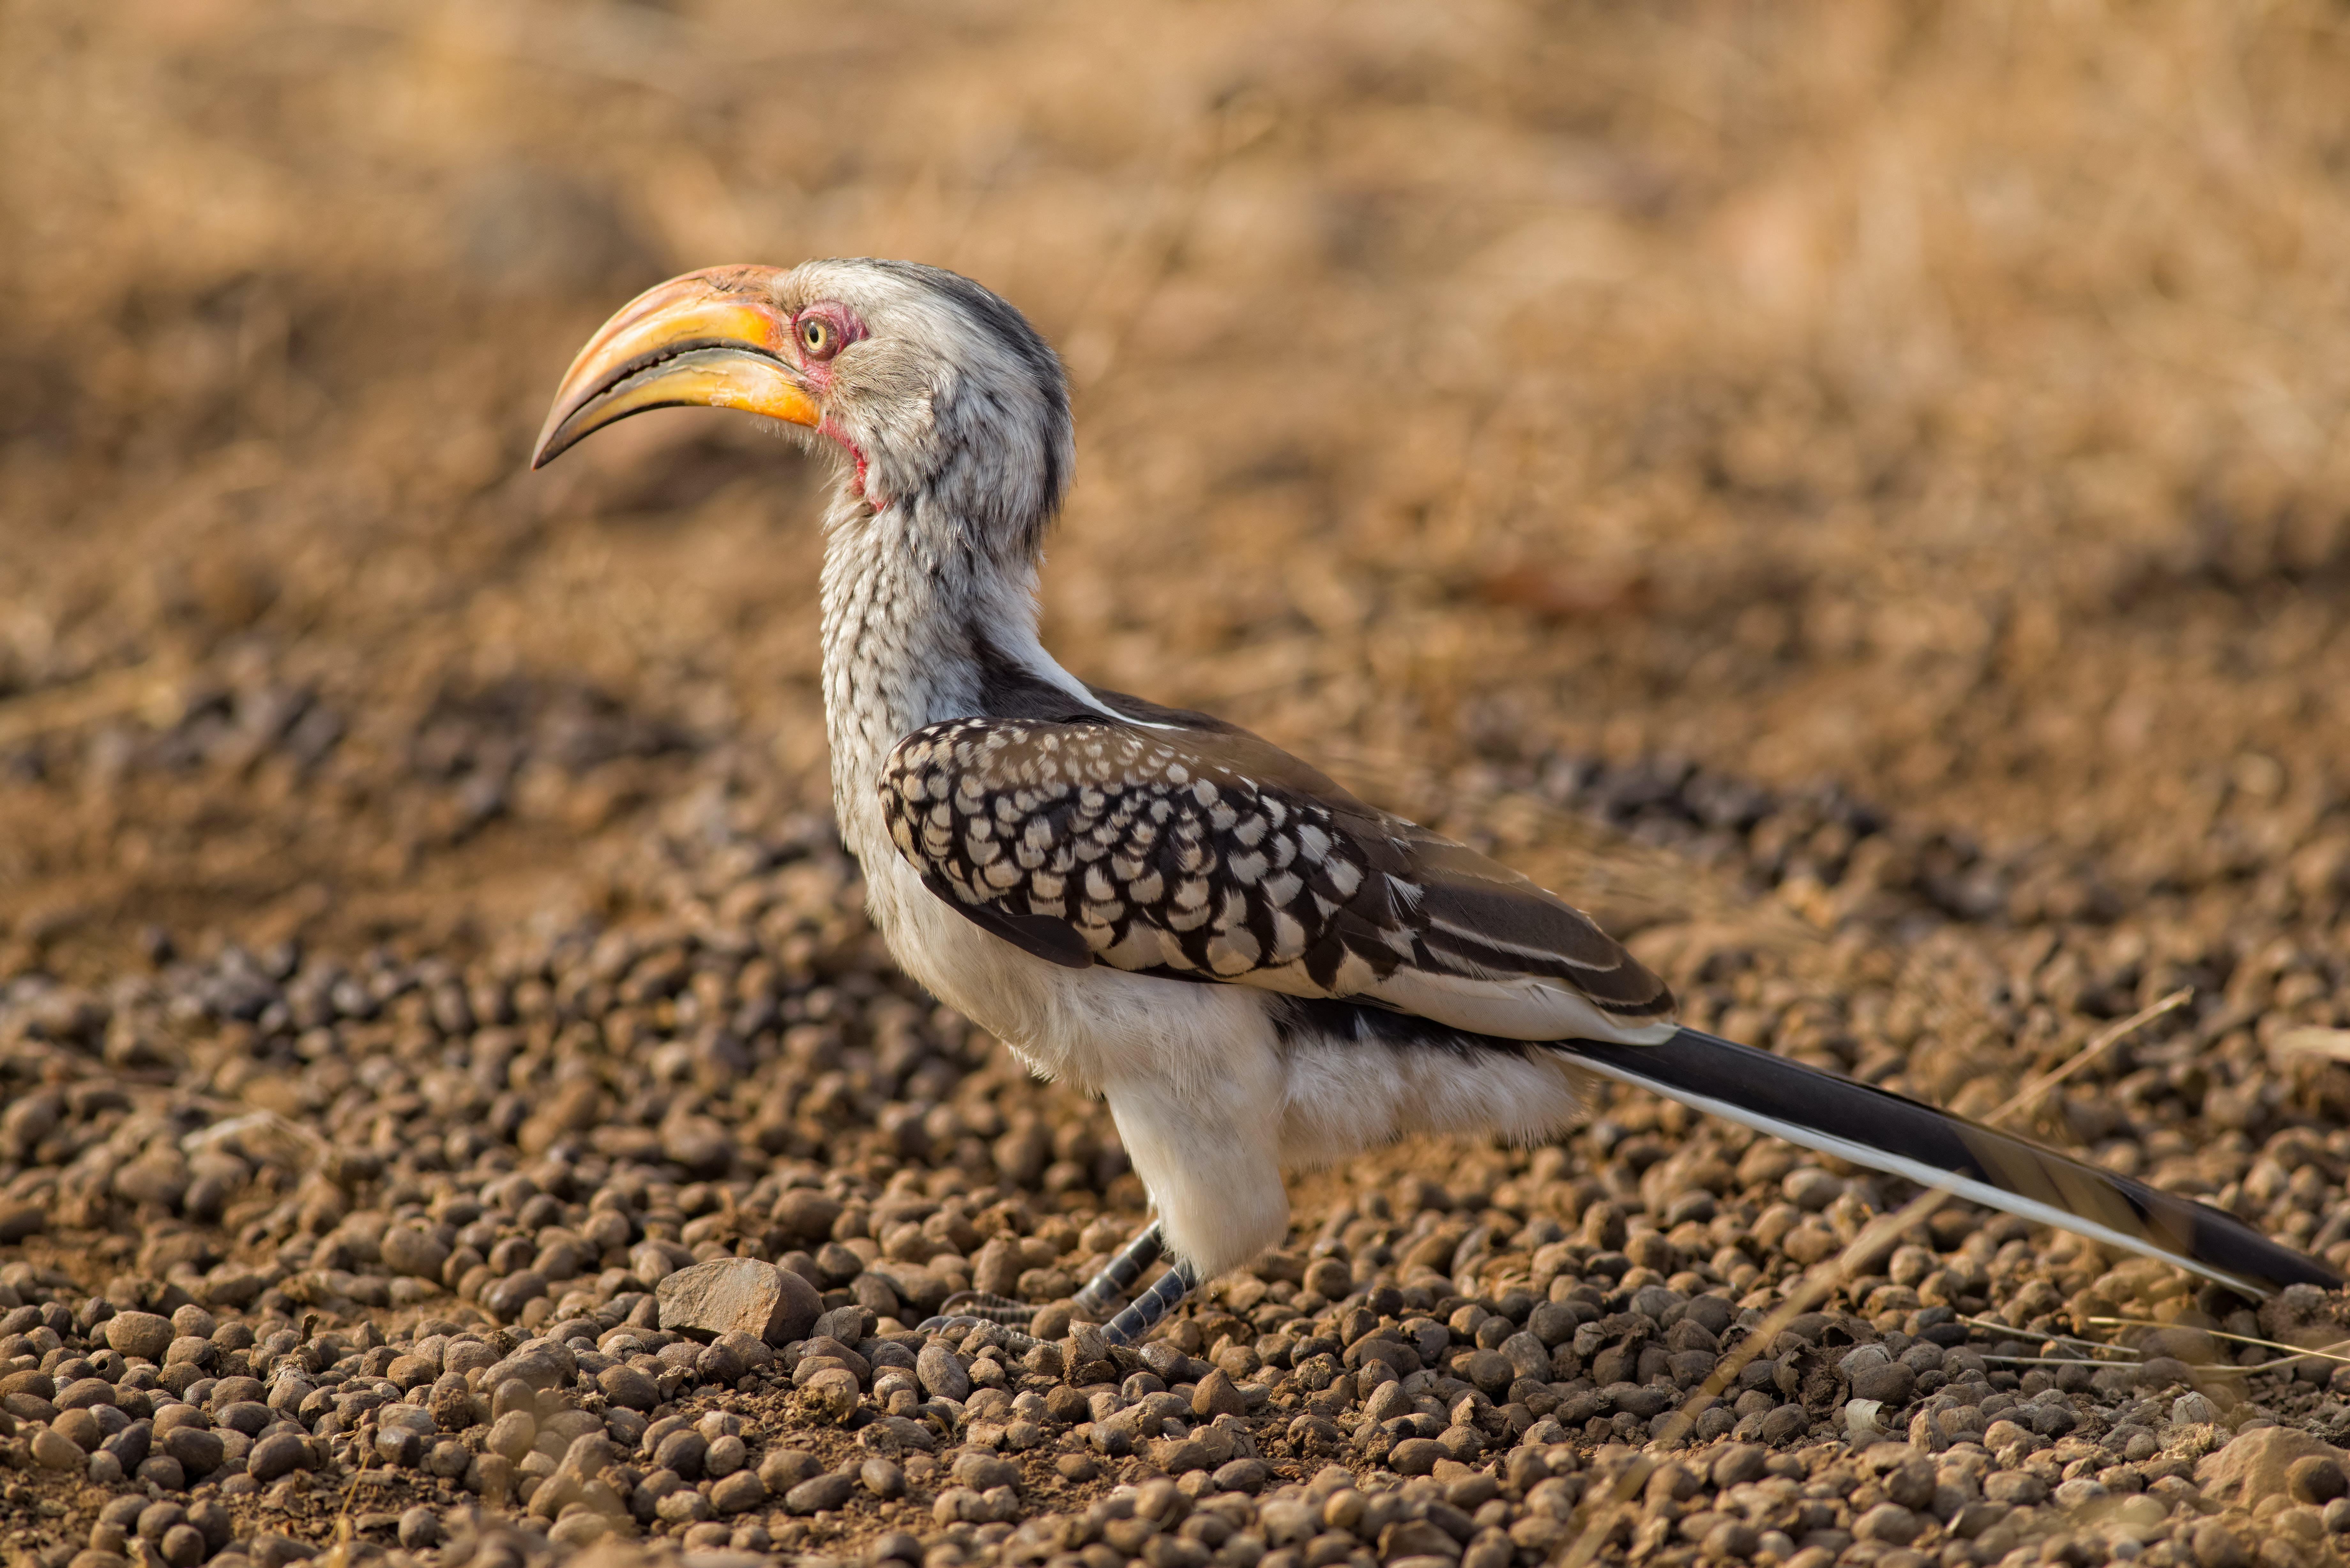 Free stock photo of Southern Yellow Billed Hornbill